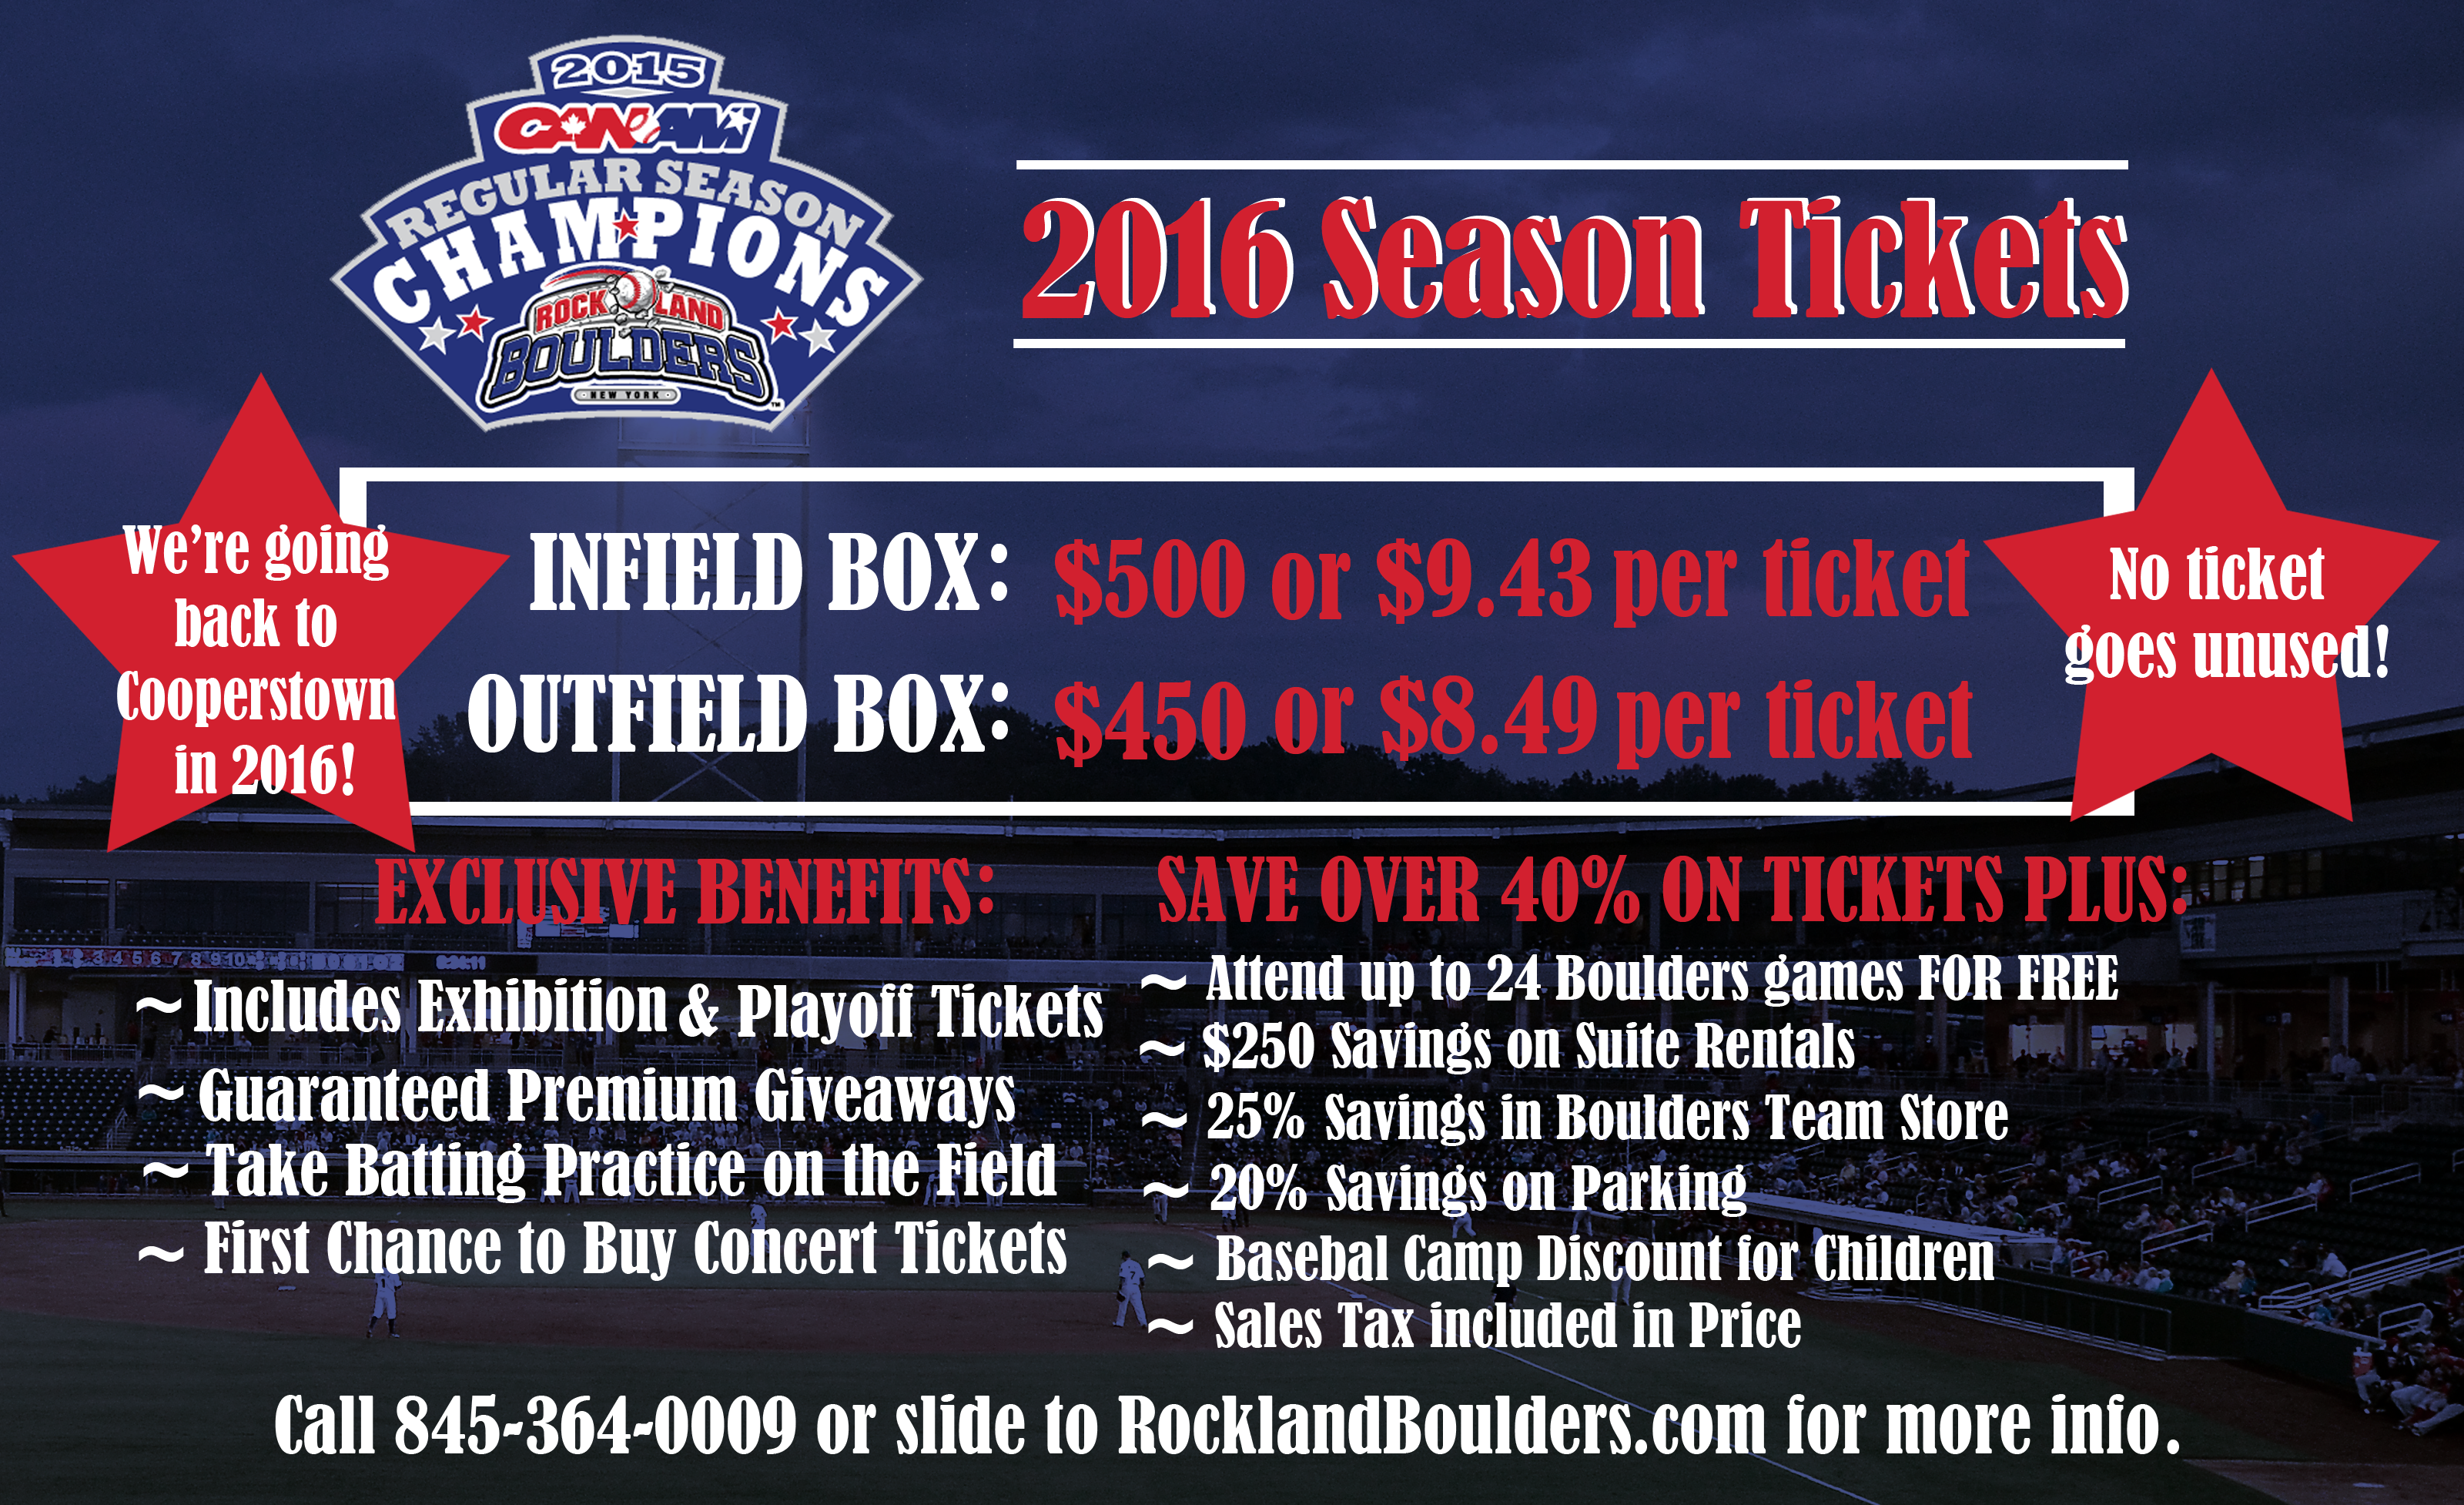 Experience the FunShine with Rockland Boulders Season Tickets.